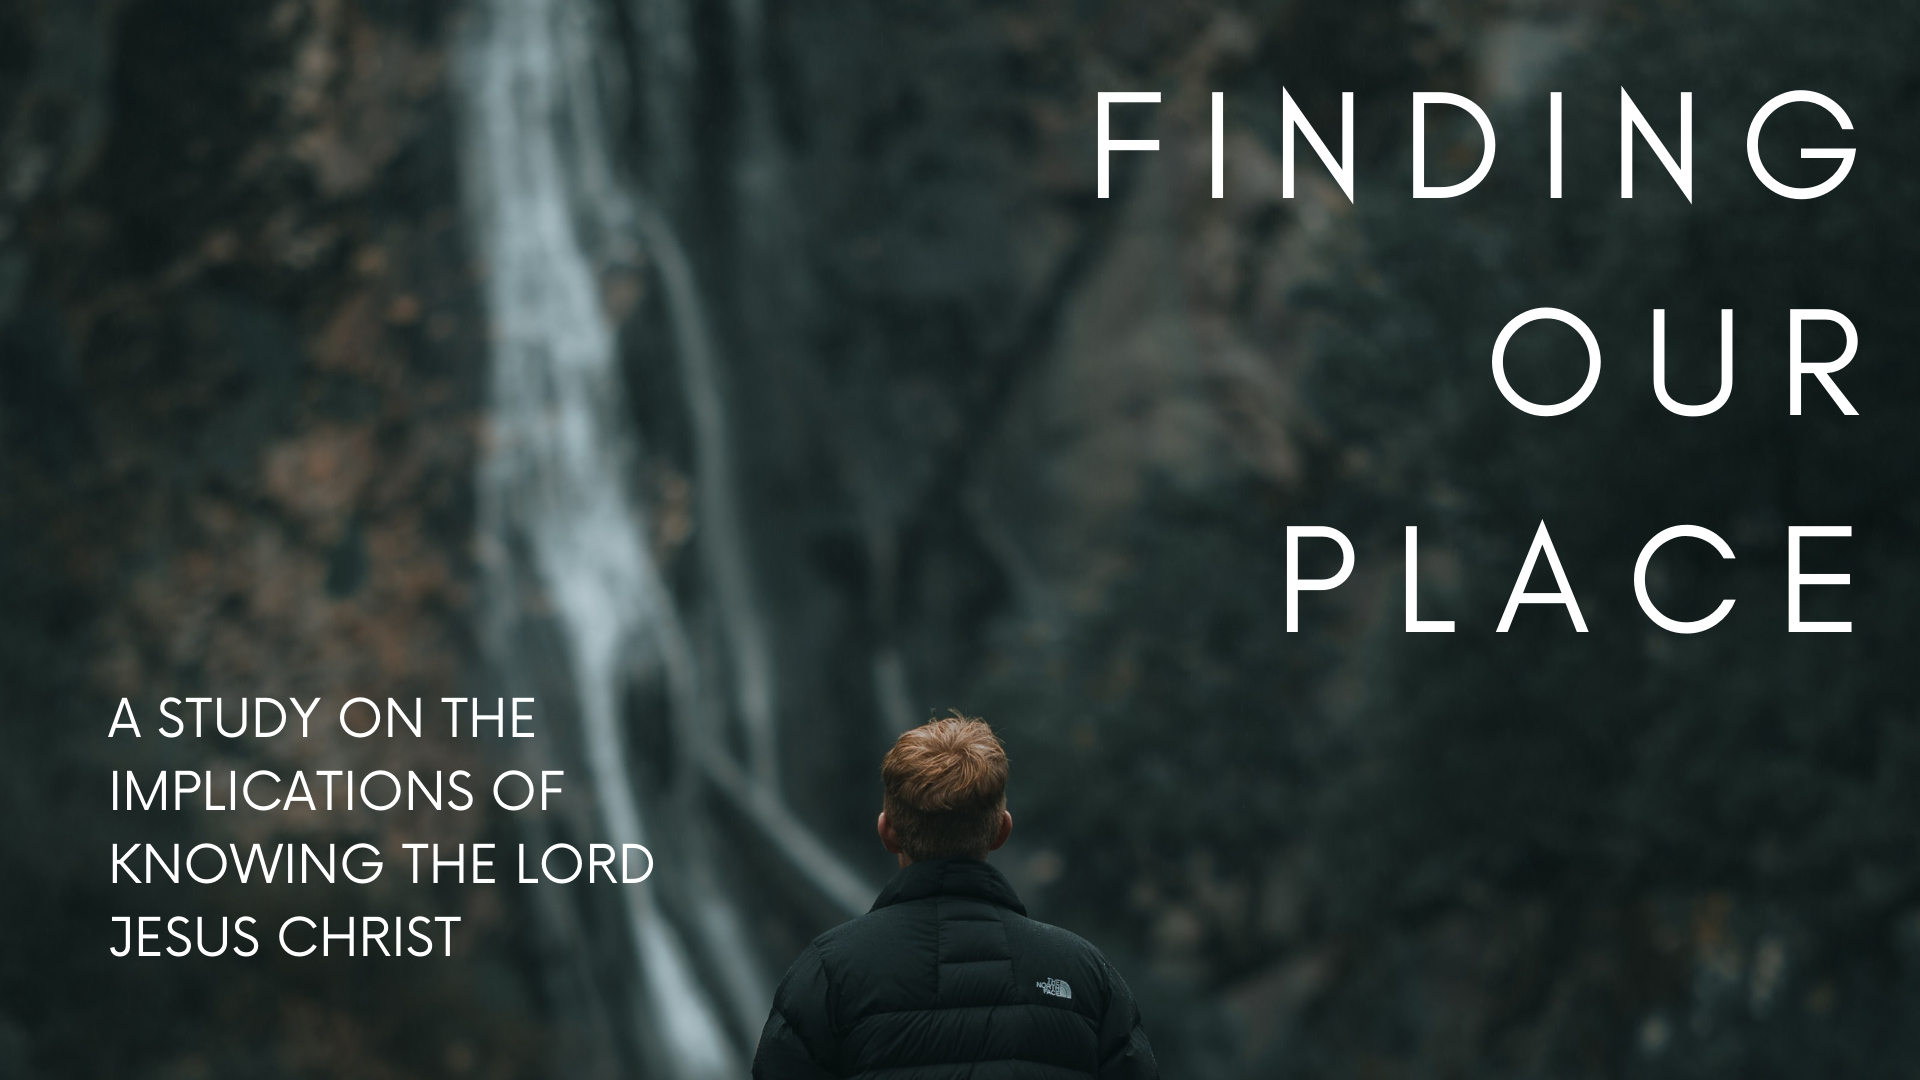 Finding Our Place